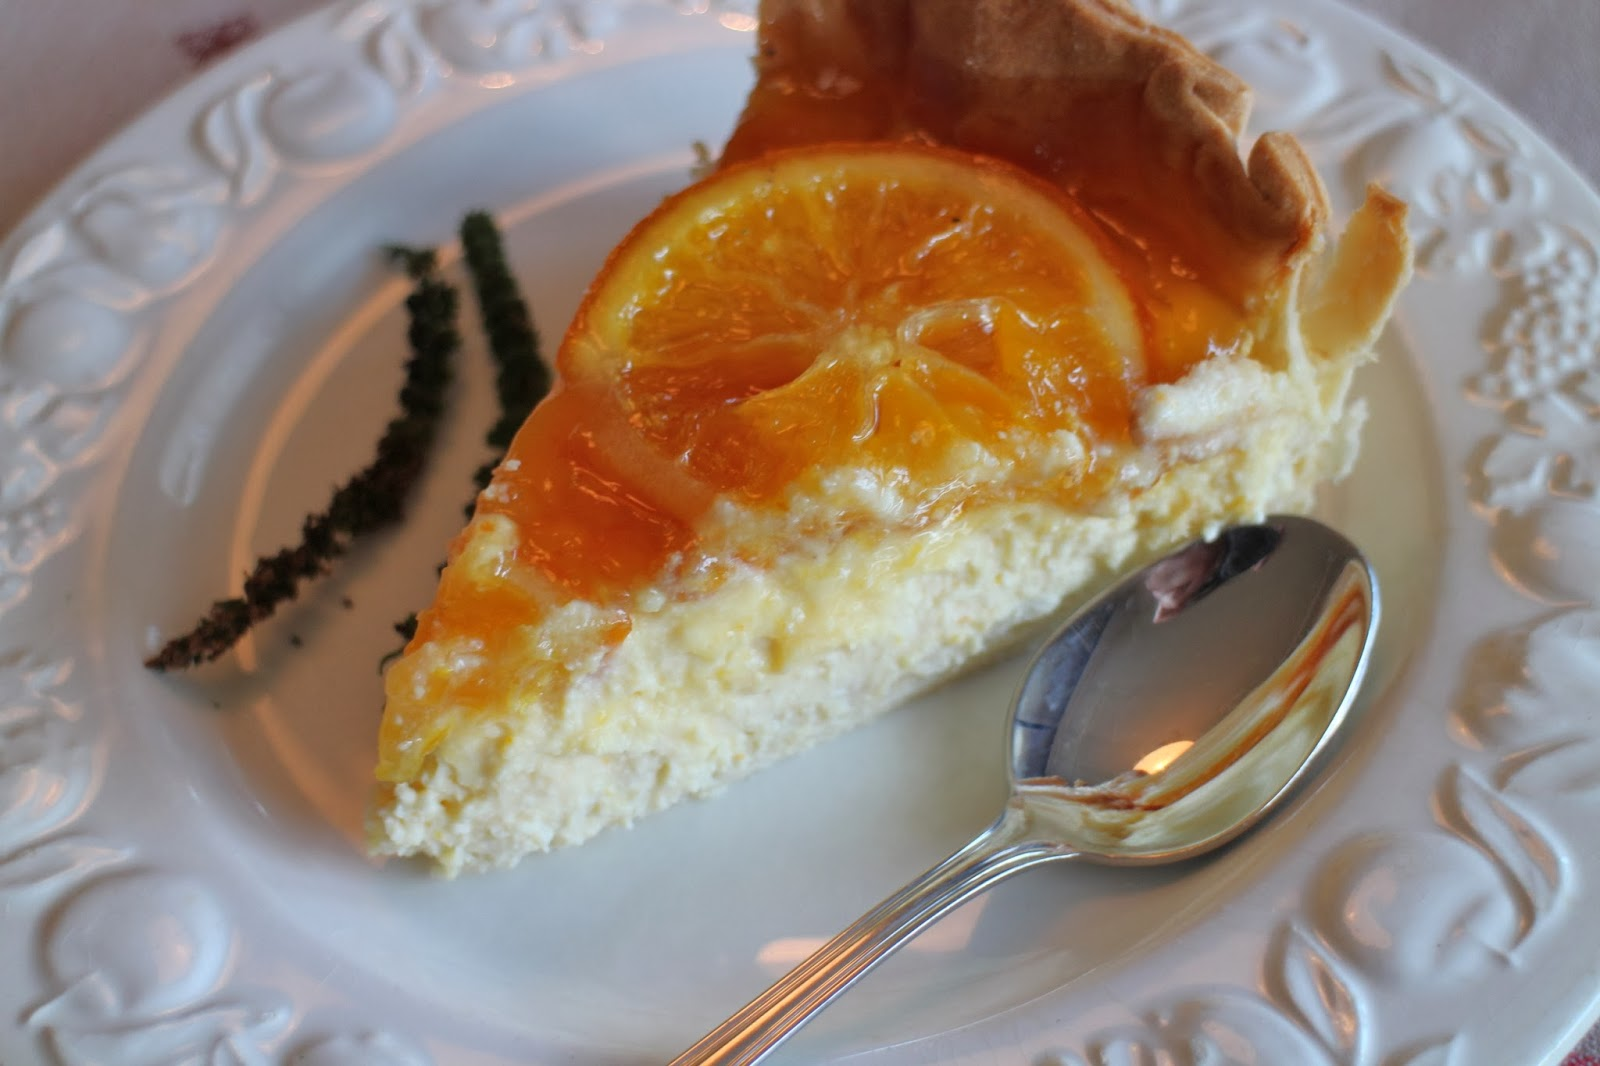 orange-cheesecake, cheesecake-de-naranja, naranja-confitada